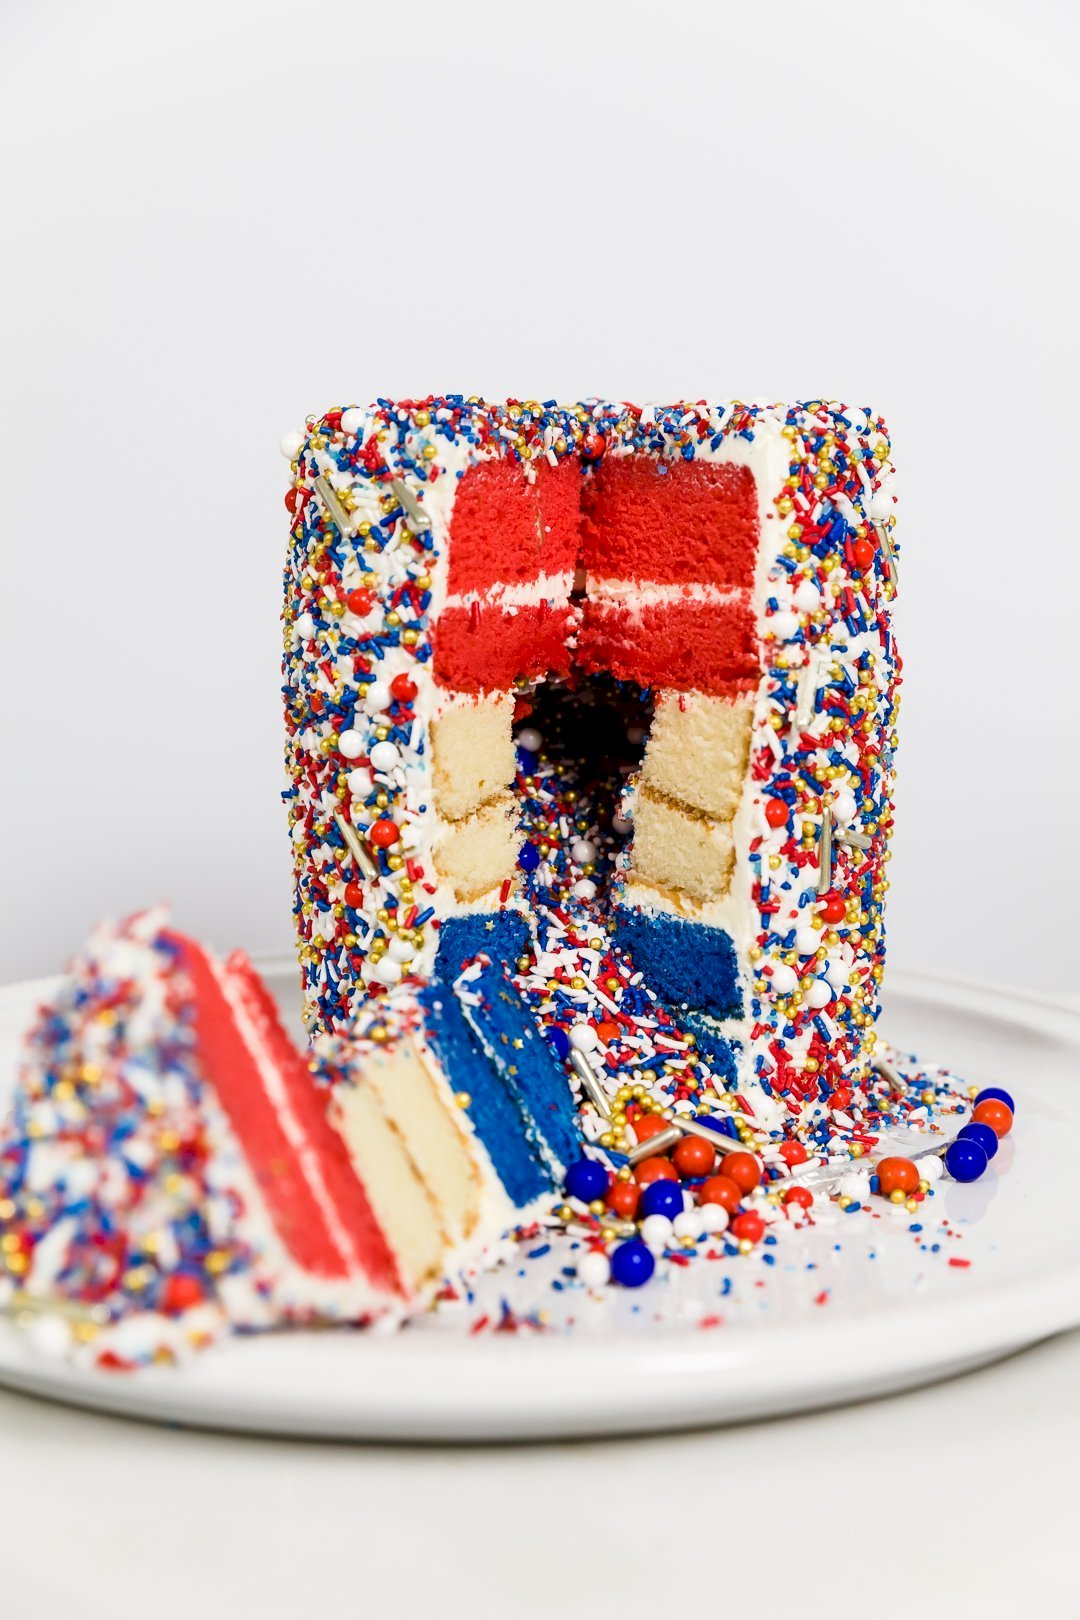 Surprise-inside sprinkle cake